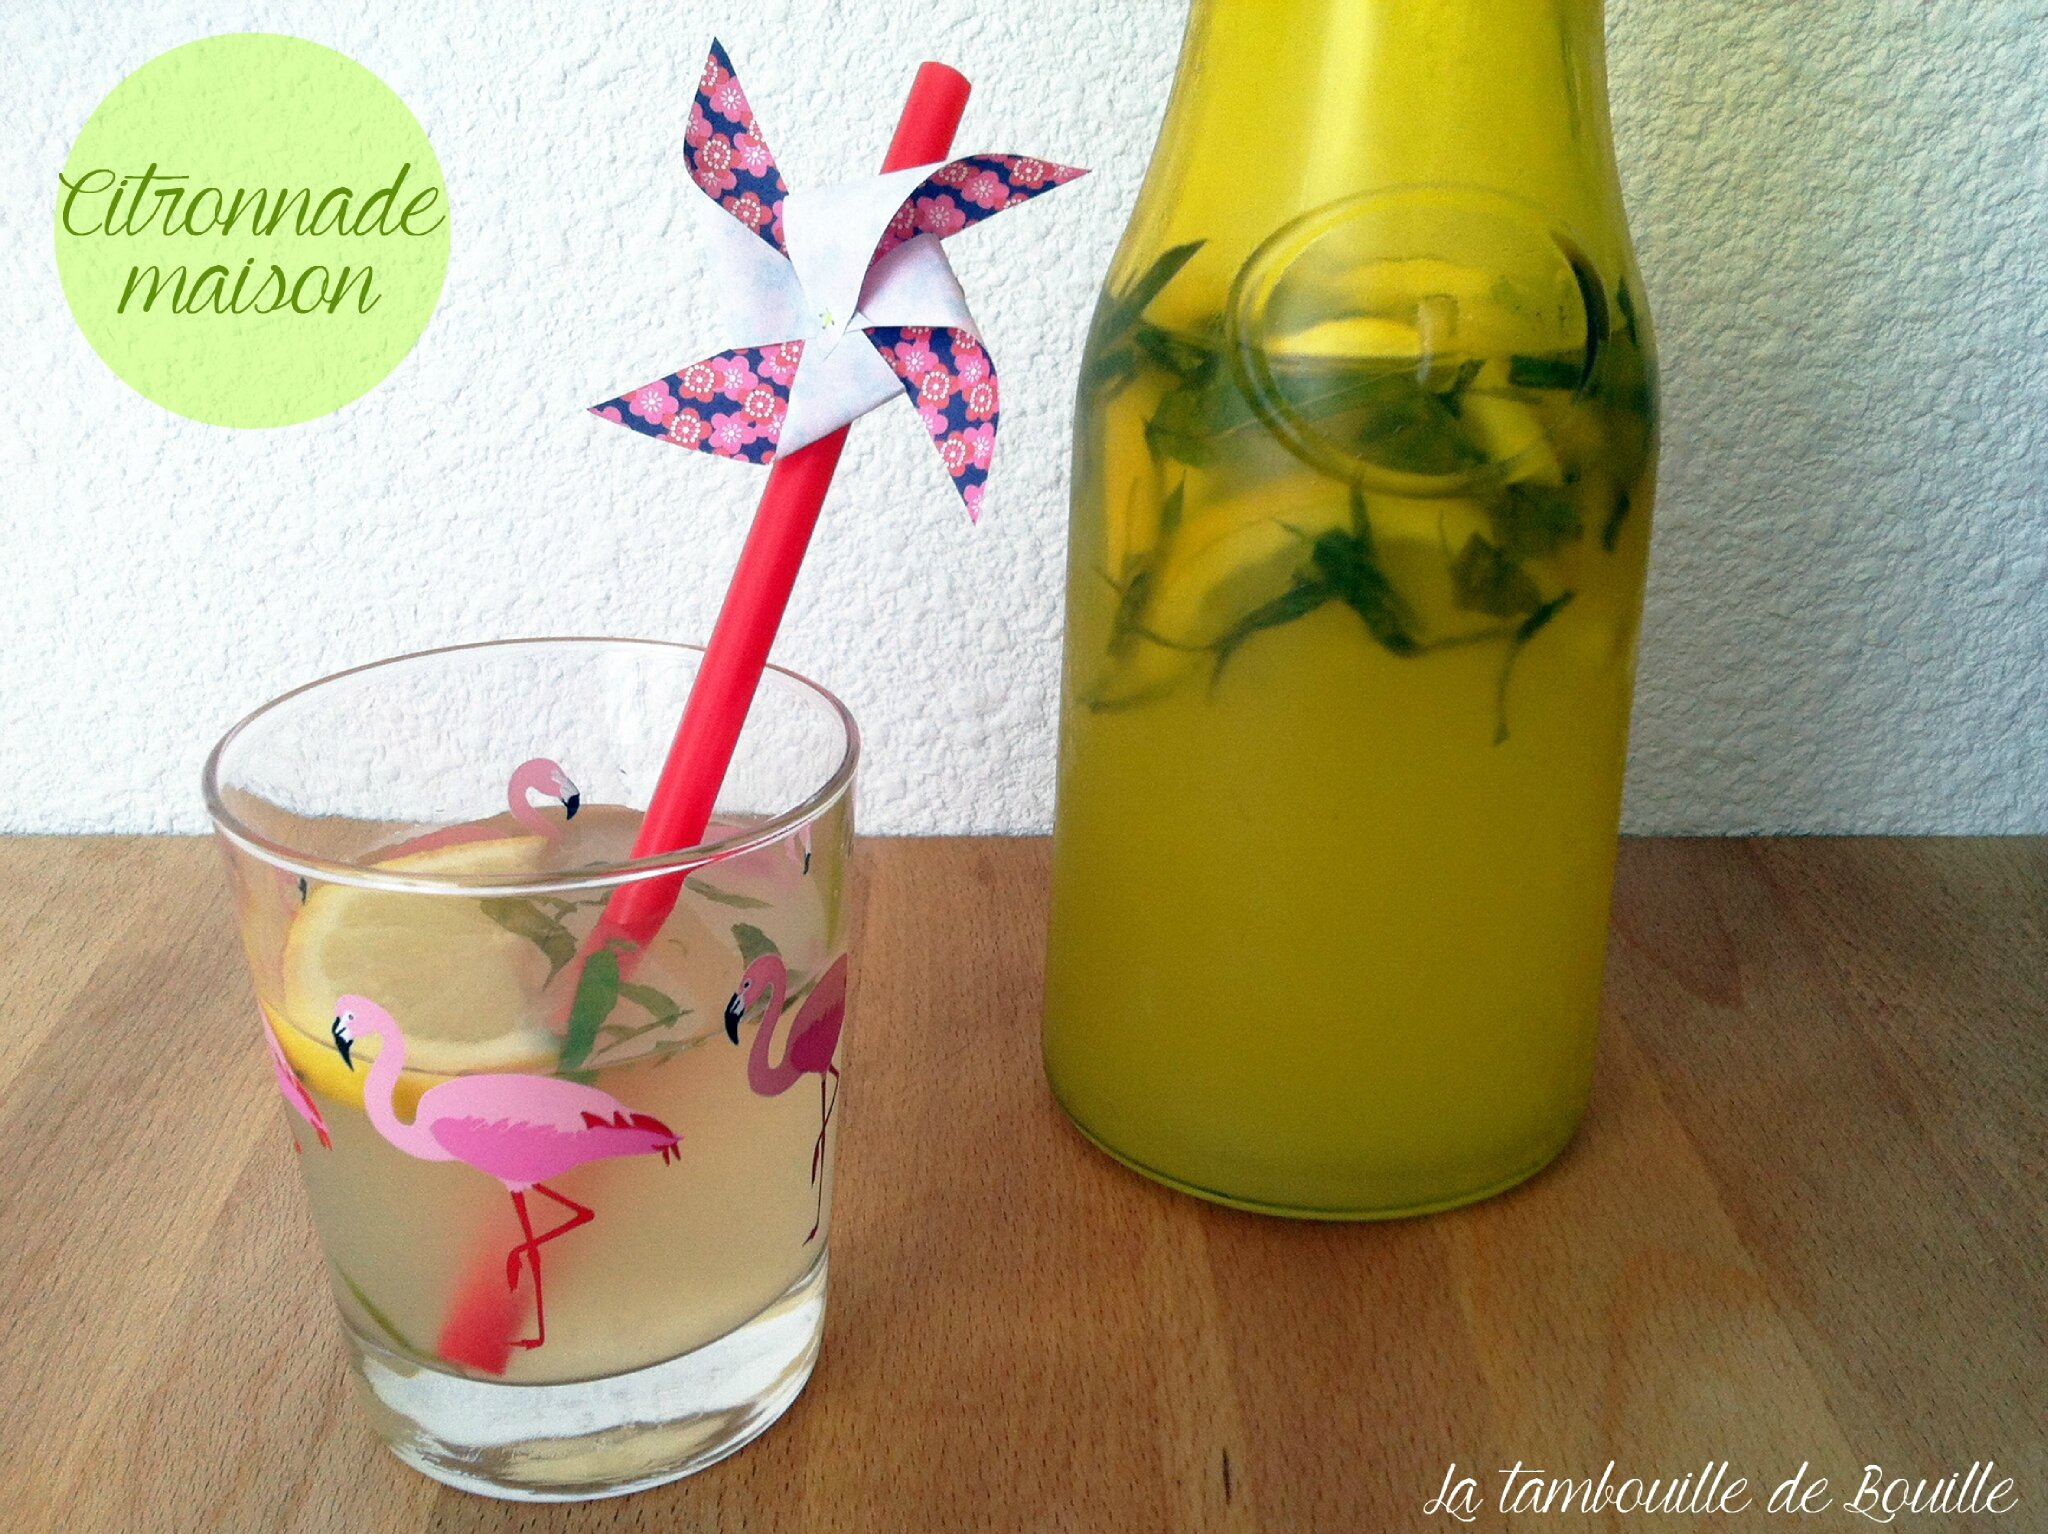 Citronnade by Monsieur Bouille